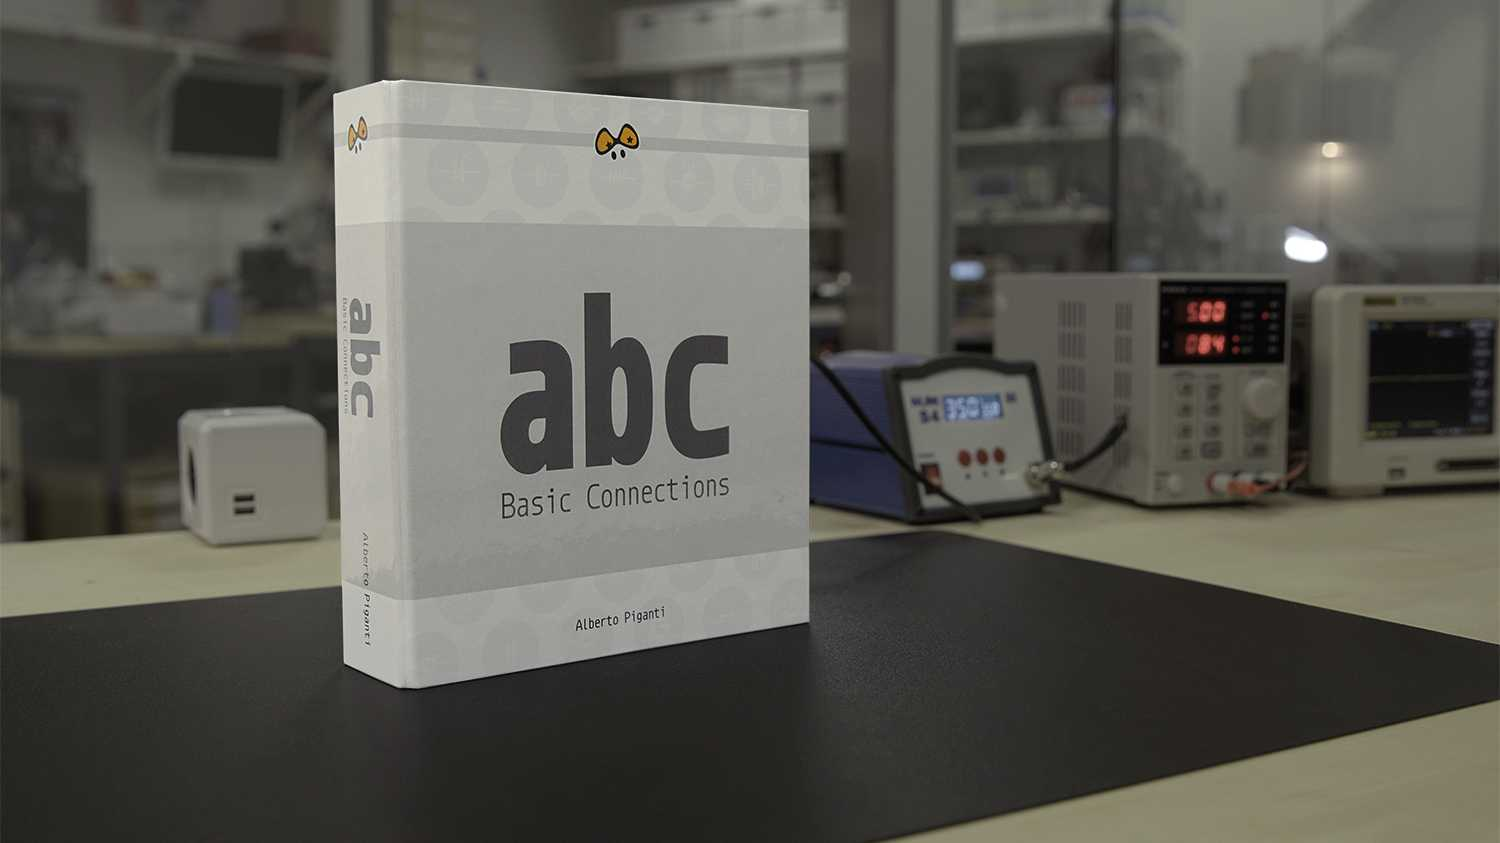 ABC Basic Connections